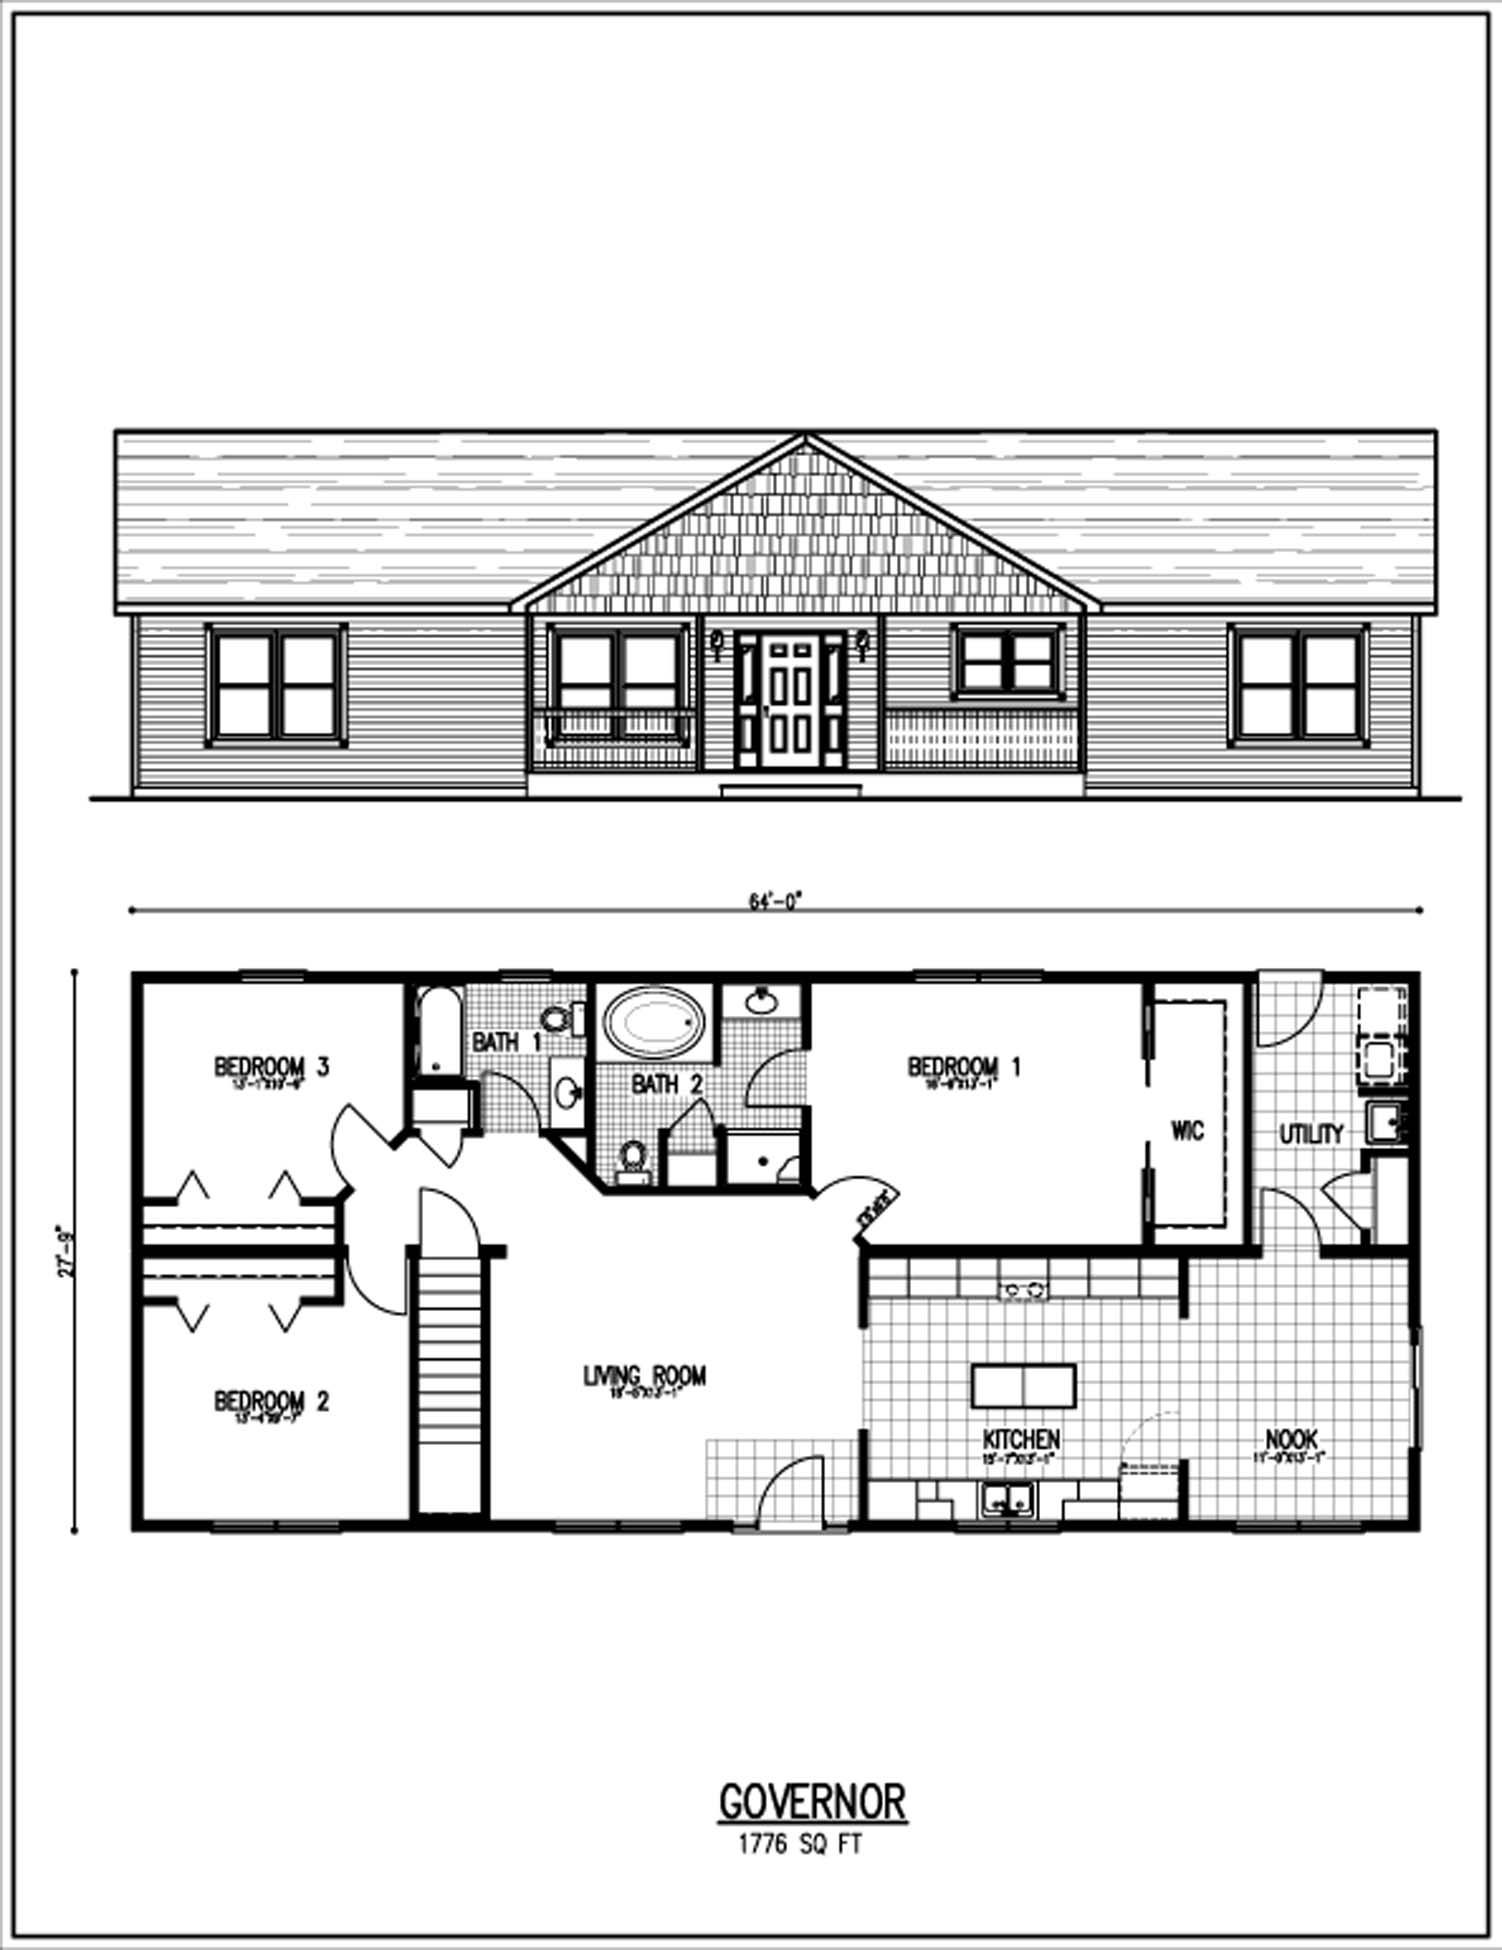 Ranch Governor Jpg 1 502 1 950 Pixels Floor Plans Ranch Basement House Plans Ranch House Floor Plans